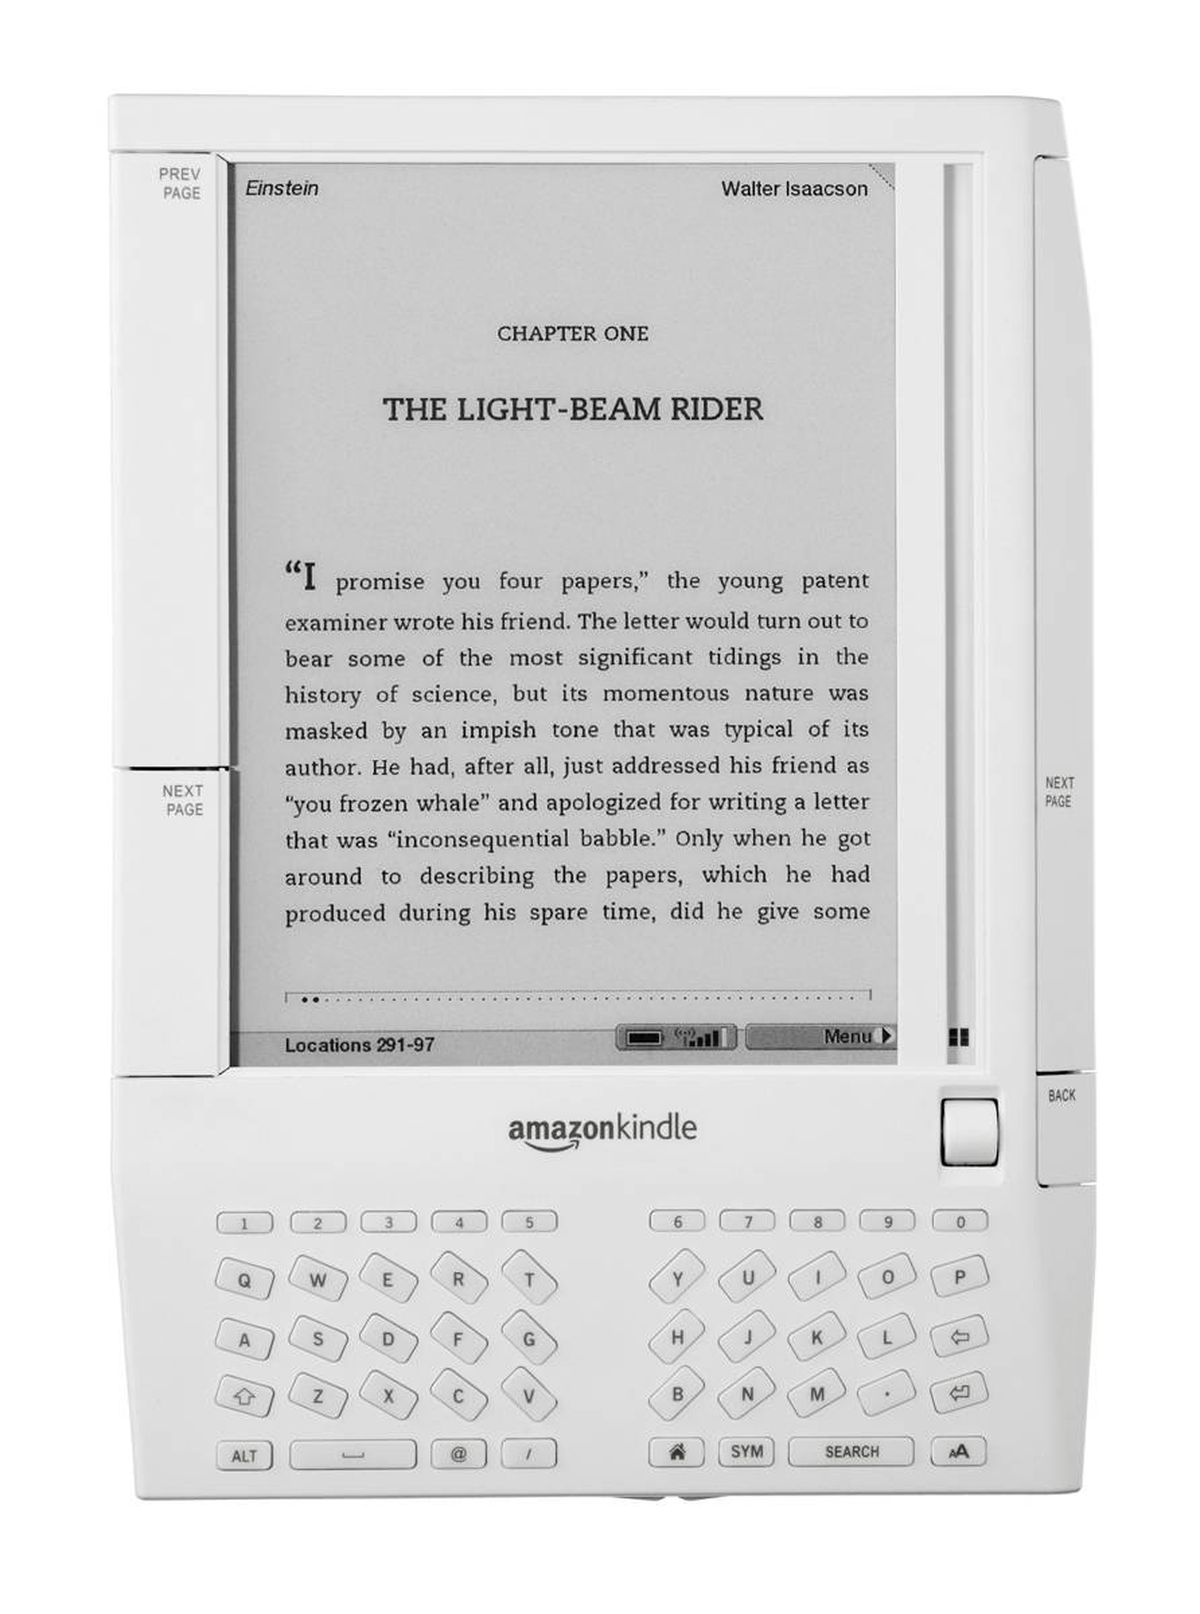 The original Amazon Kindle let users download books, newspapers and blogs over a wireless connection. It can carry about 200 books downloaded from Amazon.com, but is not yet available in Canada.